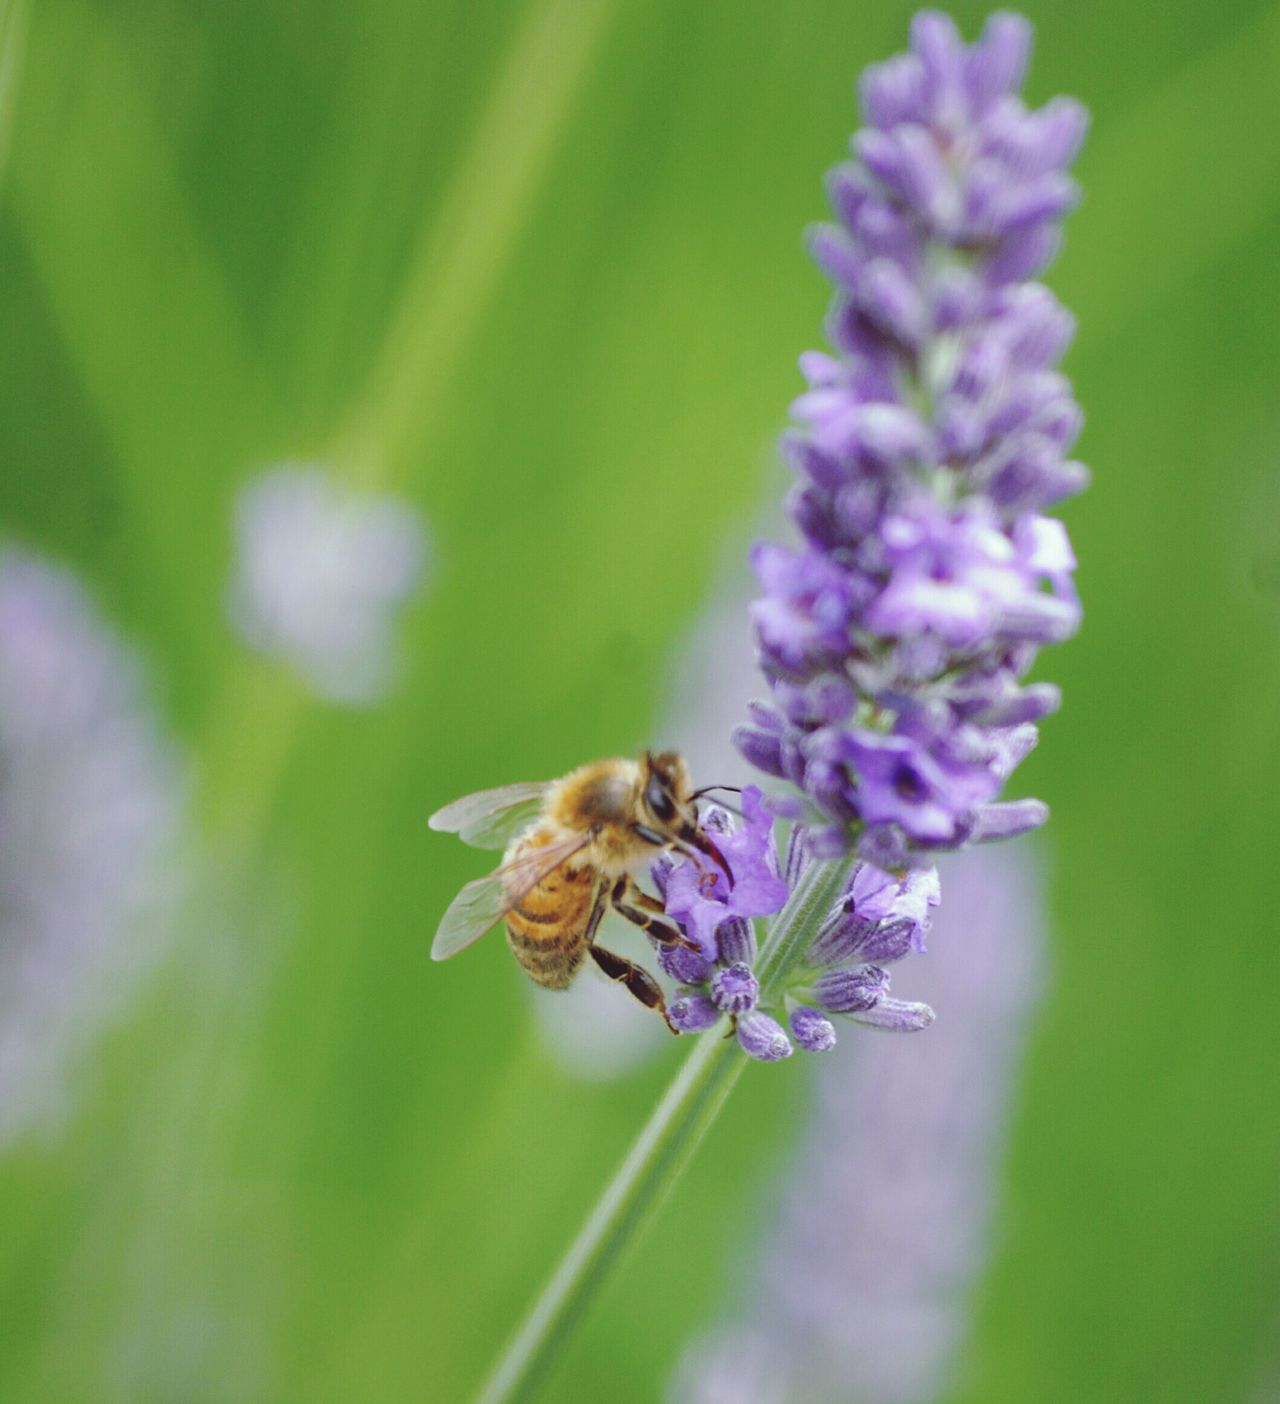 Long Tongue Sipping Nectar Lavenderflower Red Tongue Hony Bee Freind Of The World Hardworking Bee Nature Nature On Your Doorstep Summer Memories 🌄 Working In My Garden Insect Macro Nature